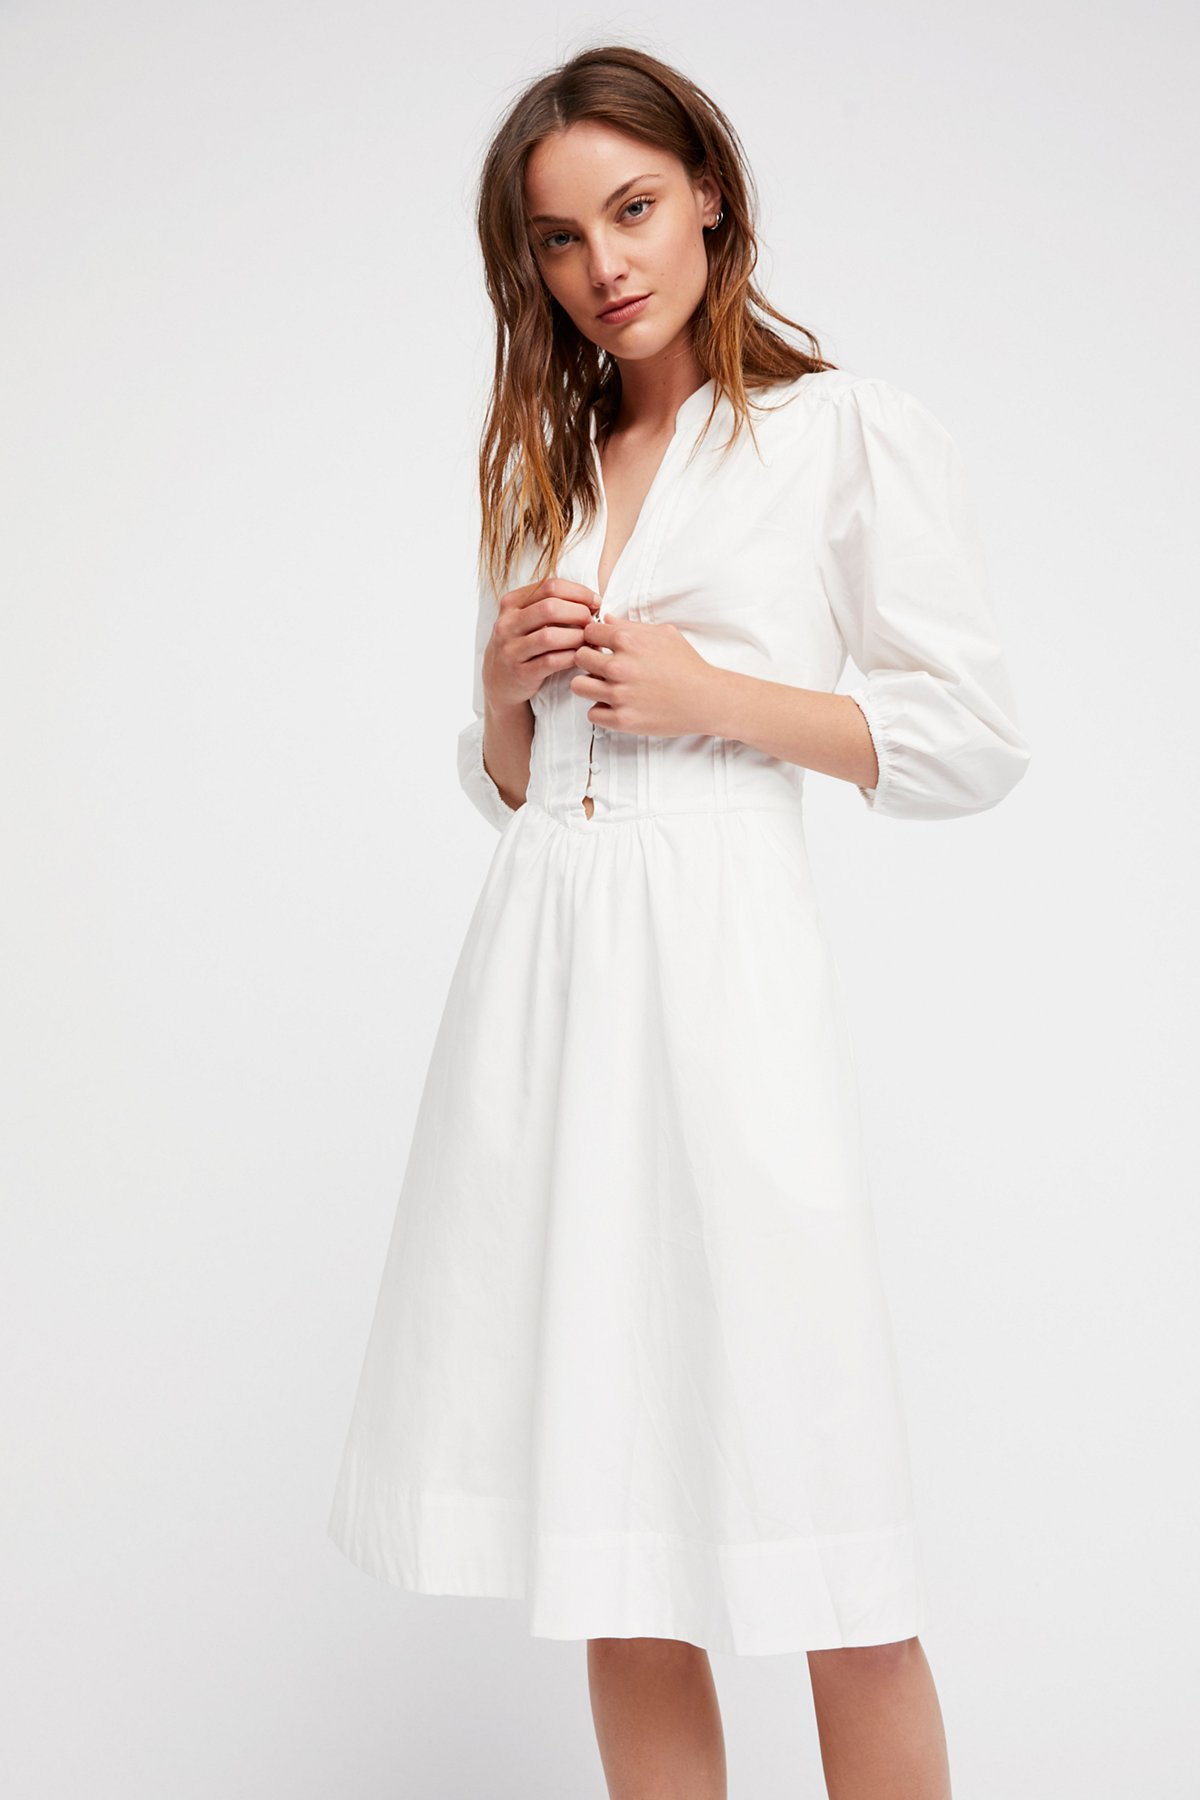 Summer Winds Midi Dress